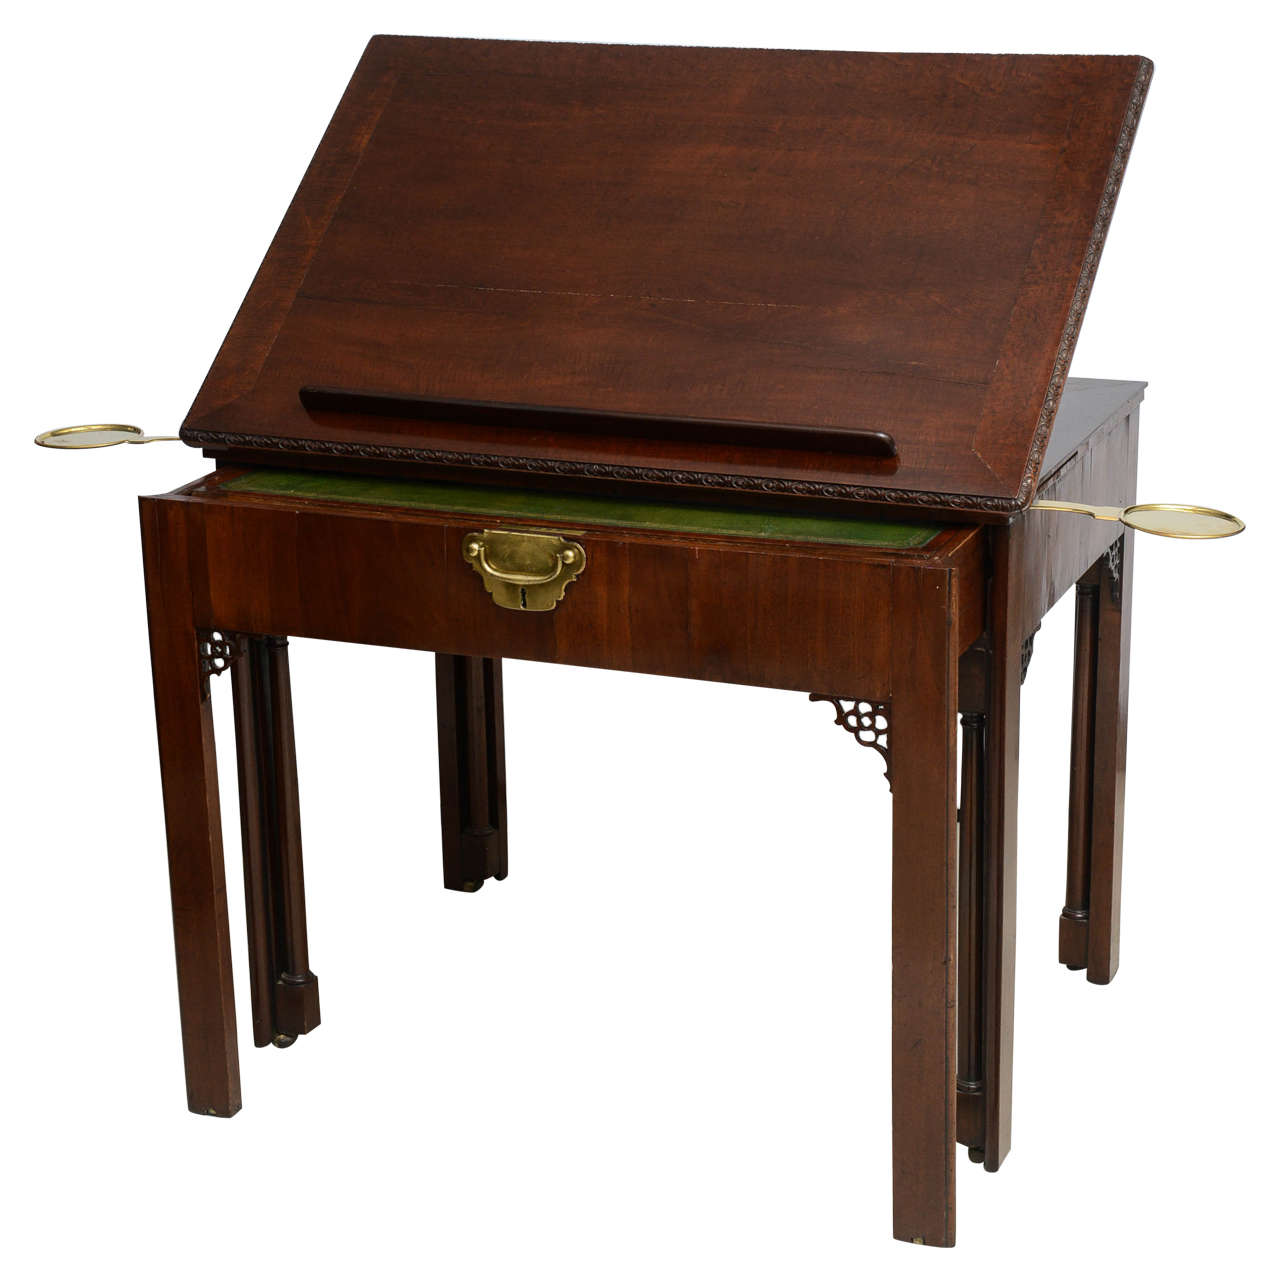 Marvelous photograph of 18th Century Georgian Architects Desk or Writing Desk at 1stdibs with #3C2013 color and 1280x1280 pixels